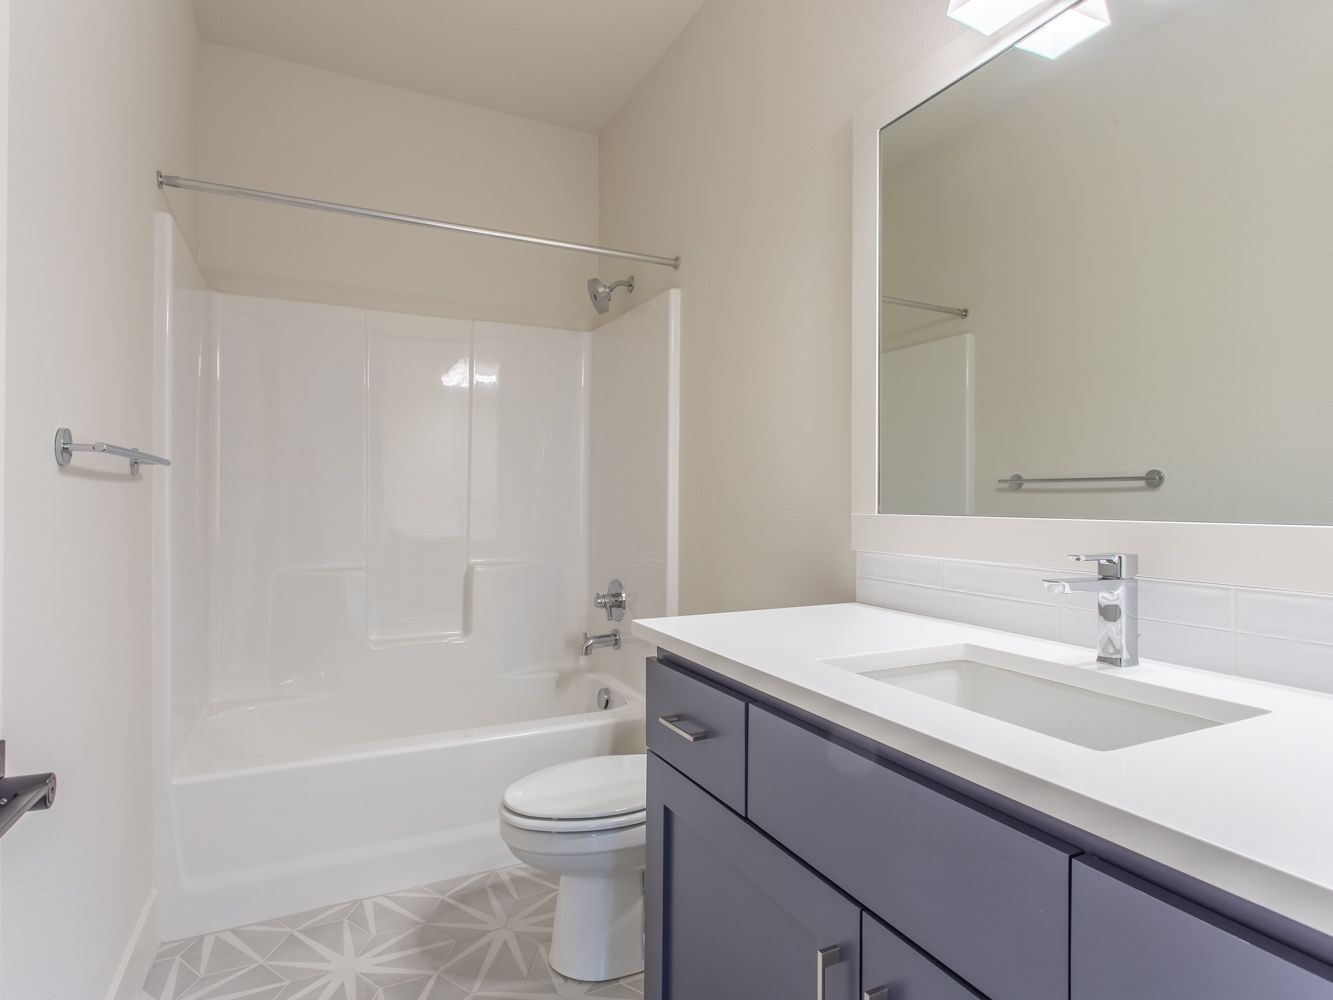 Bathroom featured in the 27611 SW Marigold Terr By Stone Bridge Homes NW in Portland-Vancouver, OR